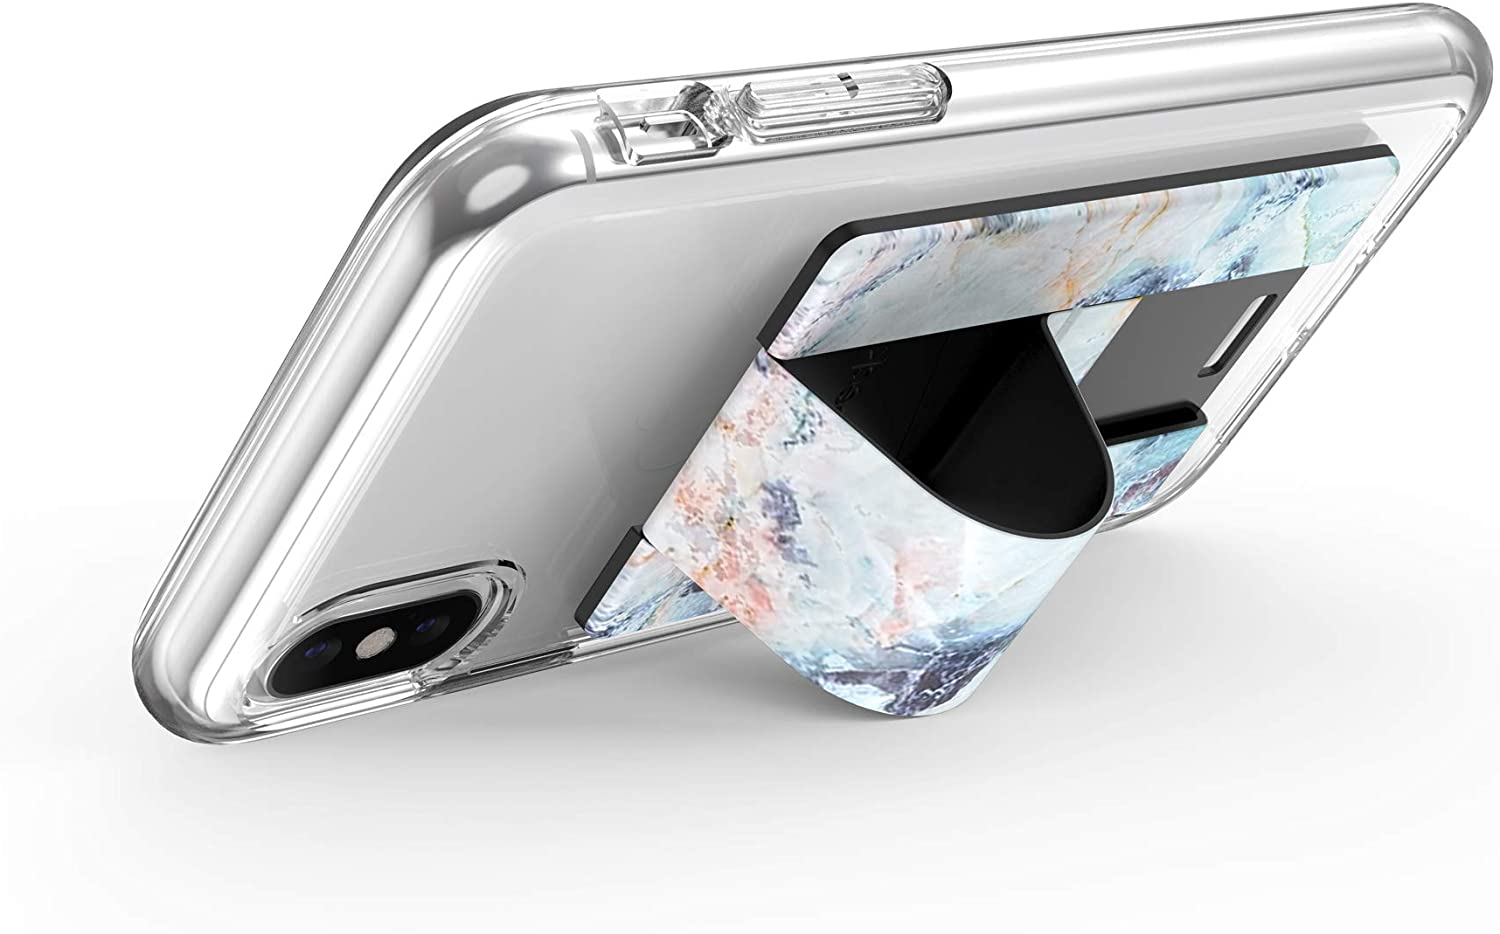 ShatteredMarble Gold Cases Speck Products GrabTab Cell Phone Holder and Stand Works With Most Cell Phones